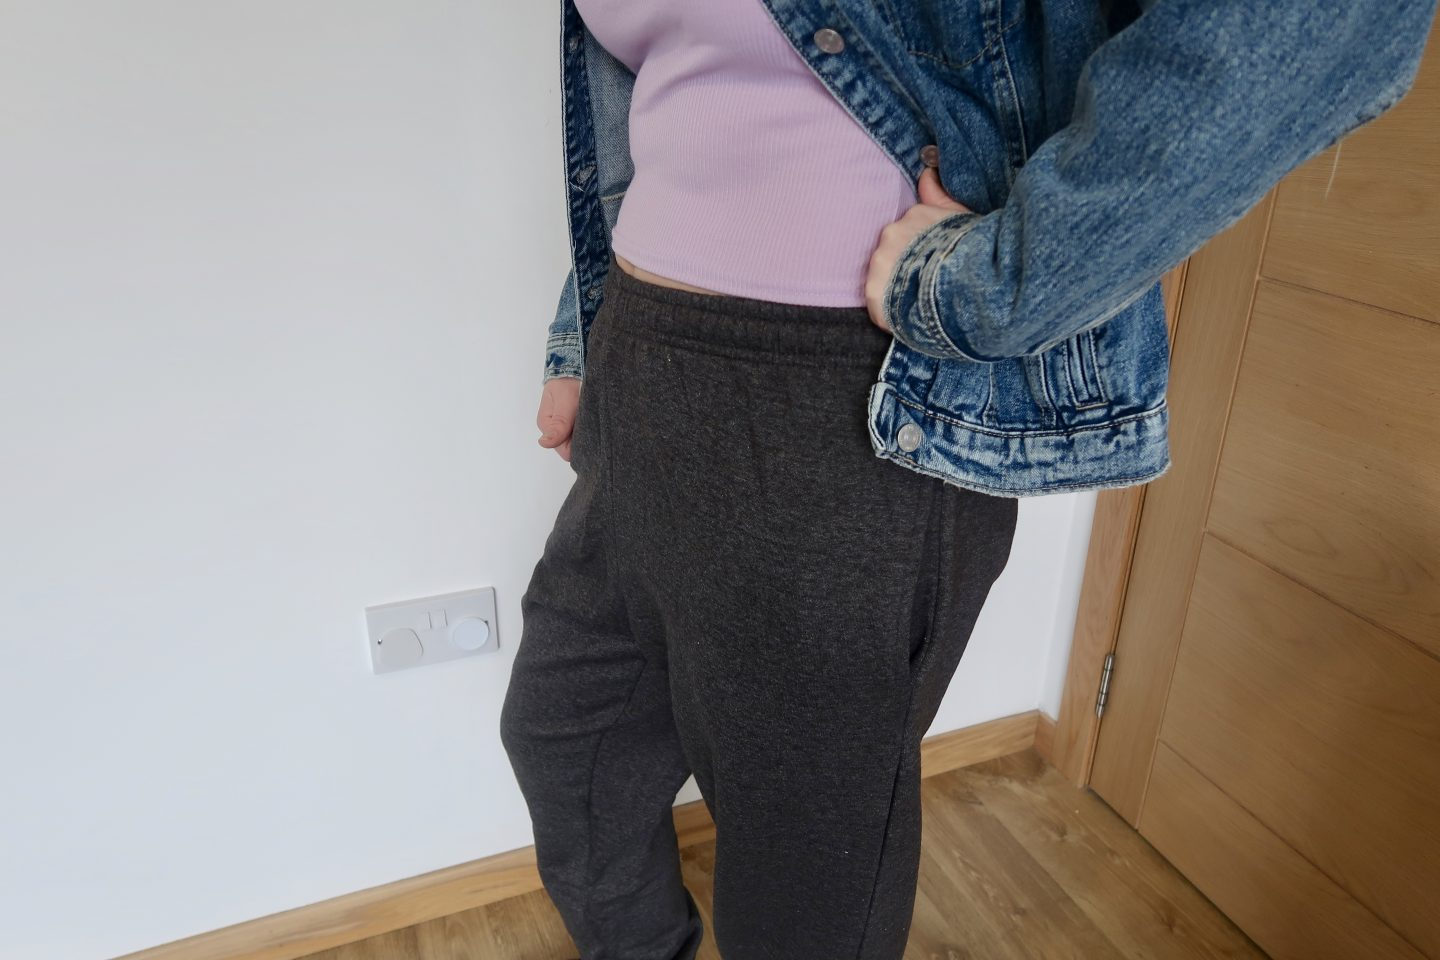 The torso of a woman in grey joggers, a lilac t-shirt and a denim jacket.  She has one hand on her hip, pulling the jacket to the side